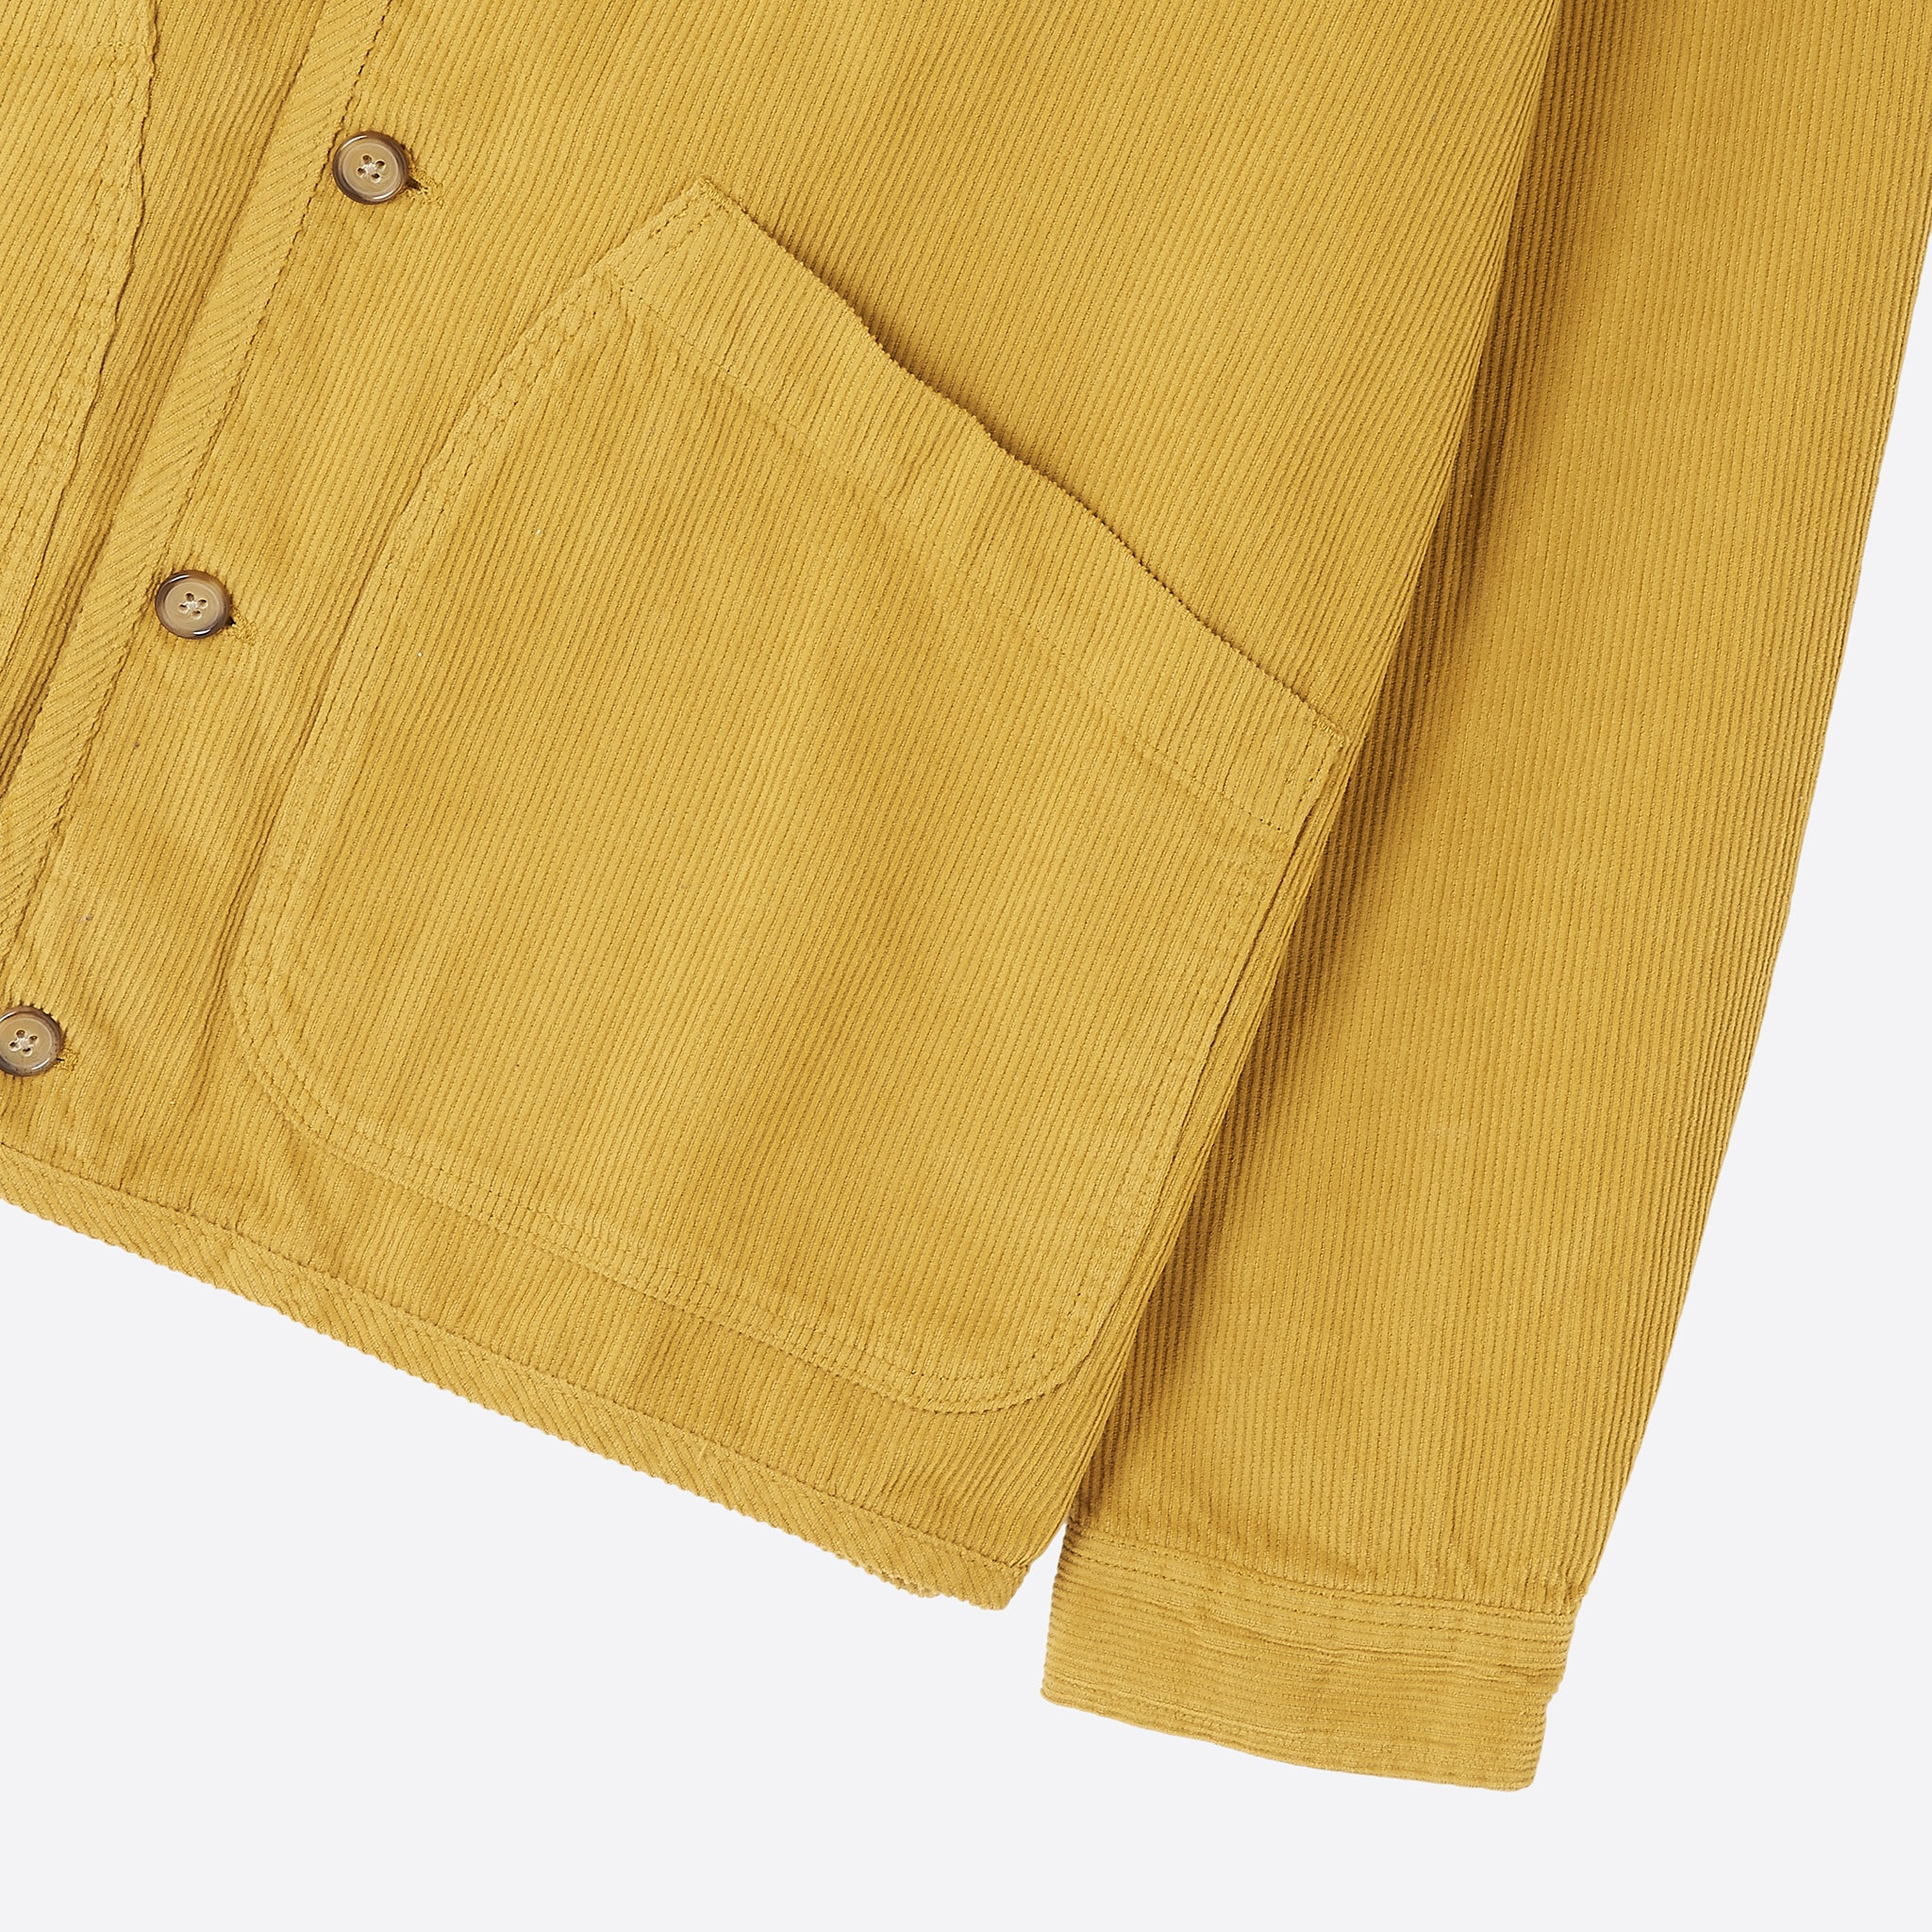 Kestin Hare Neist Cord Overshirt in Old Gold